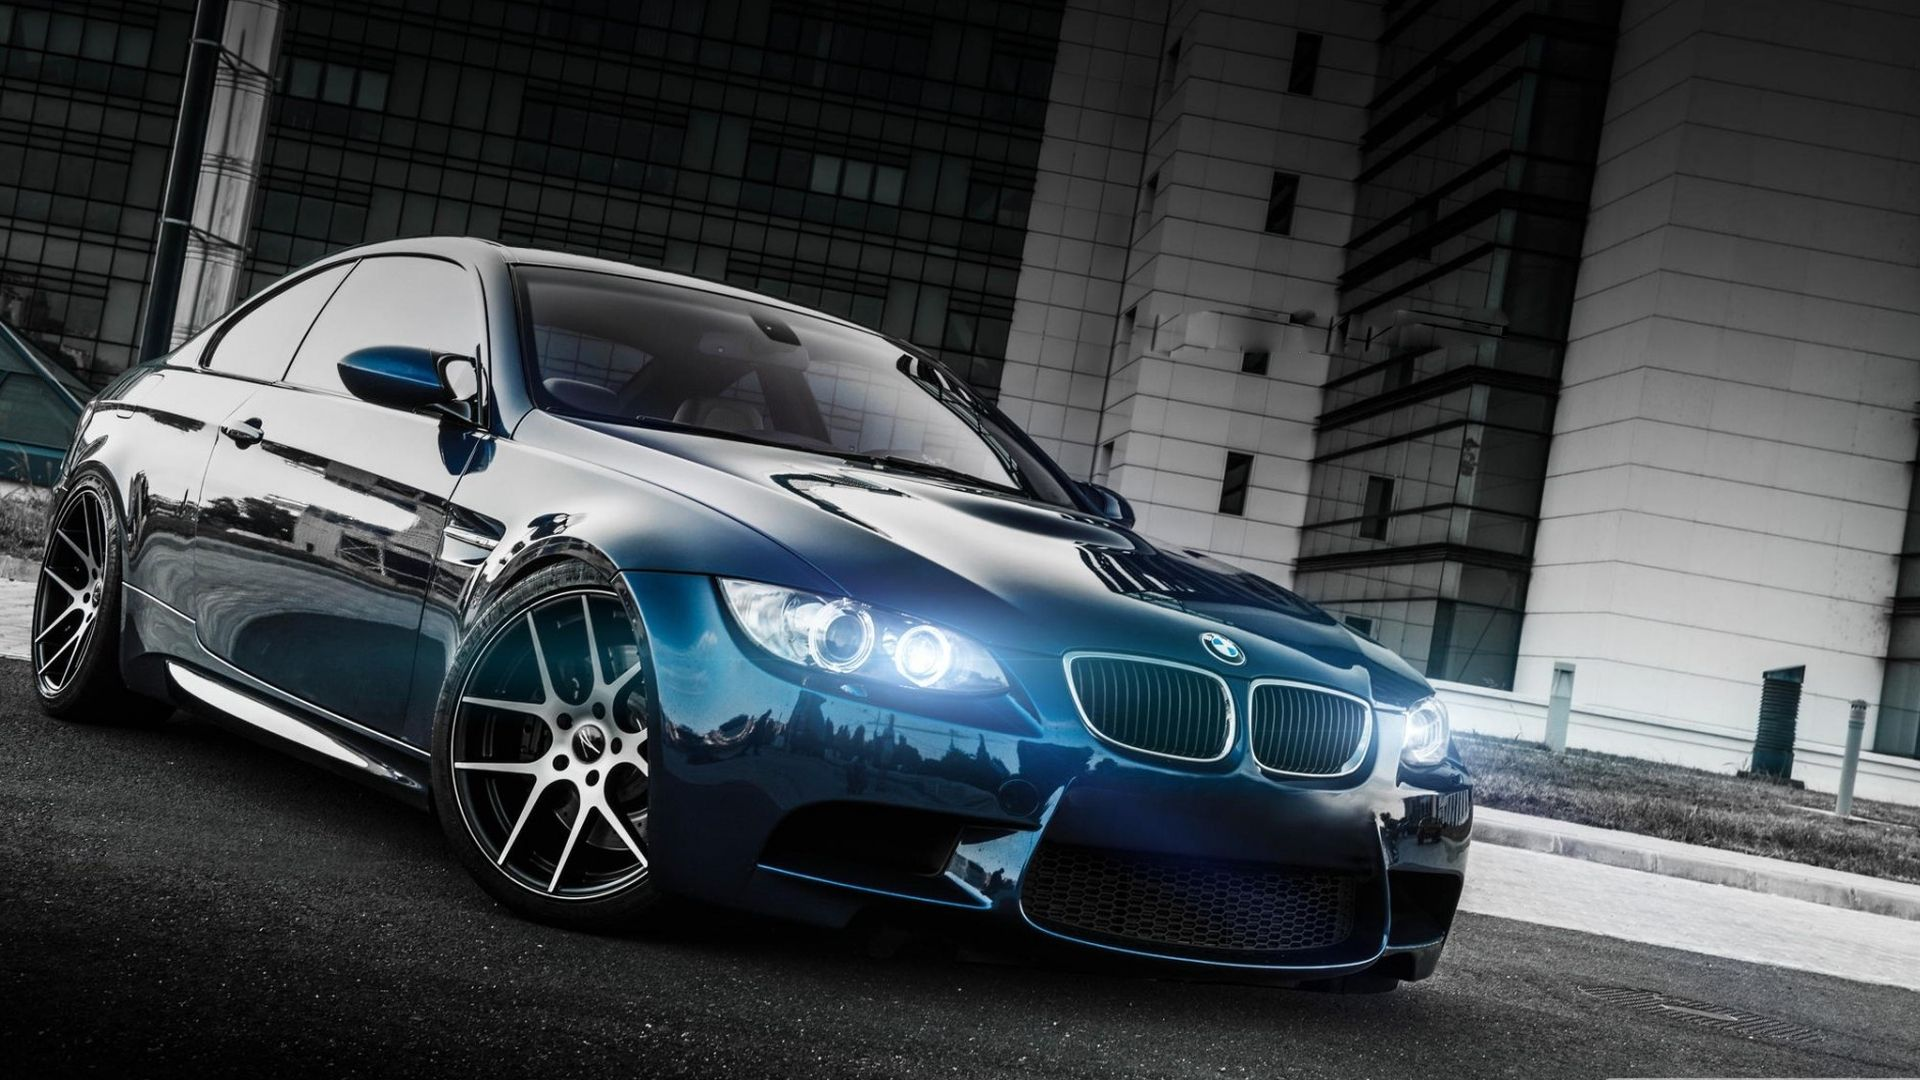 Bmw M3 Wallpapers Top Free Bmw M3 Backgrounds Wallpaperaccess